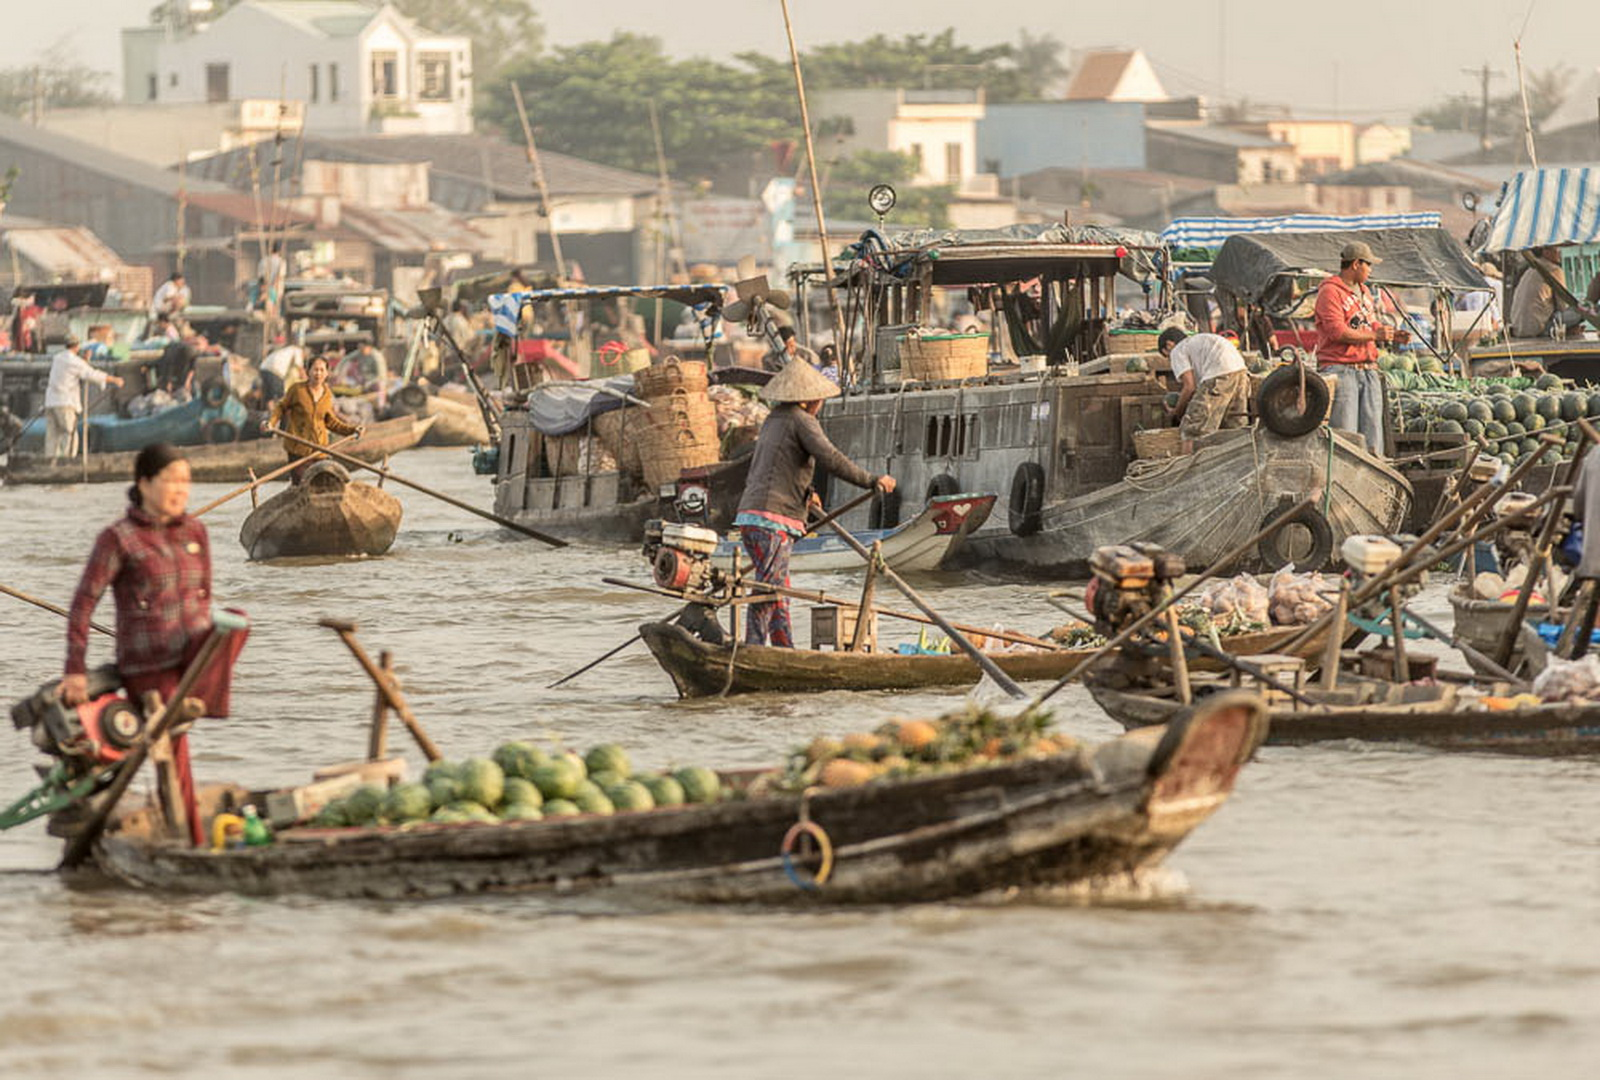 Vietnam and Cambodia photography tour, Images of Indochina